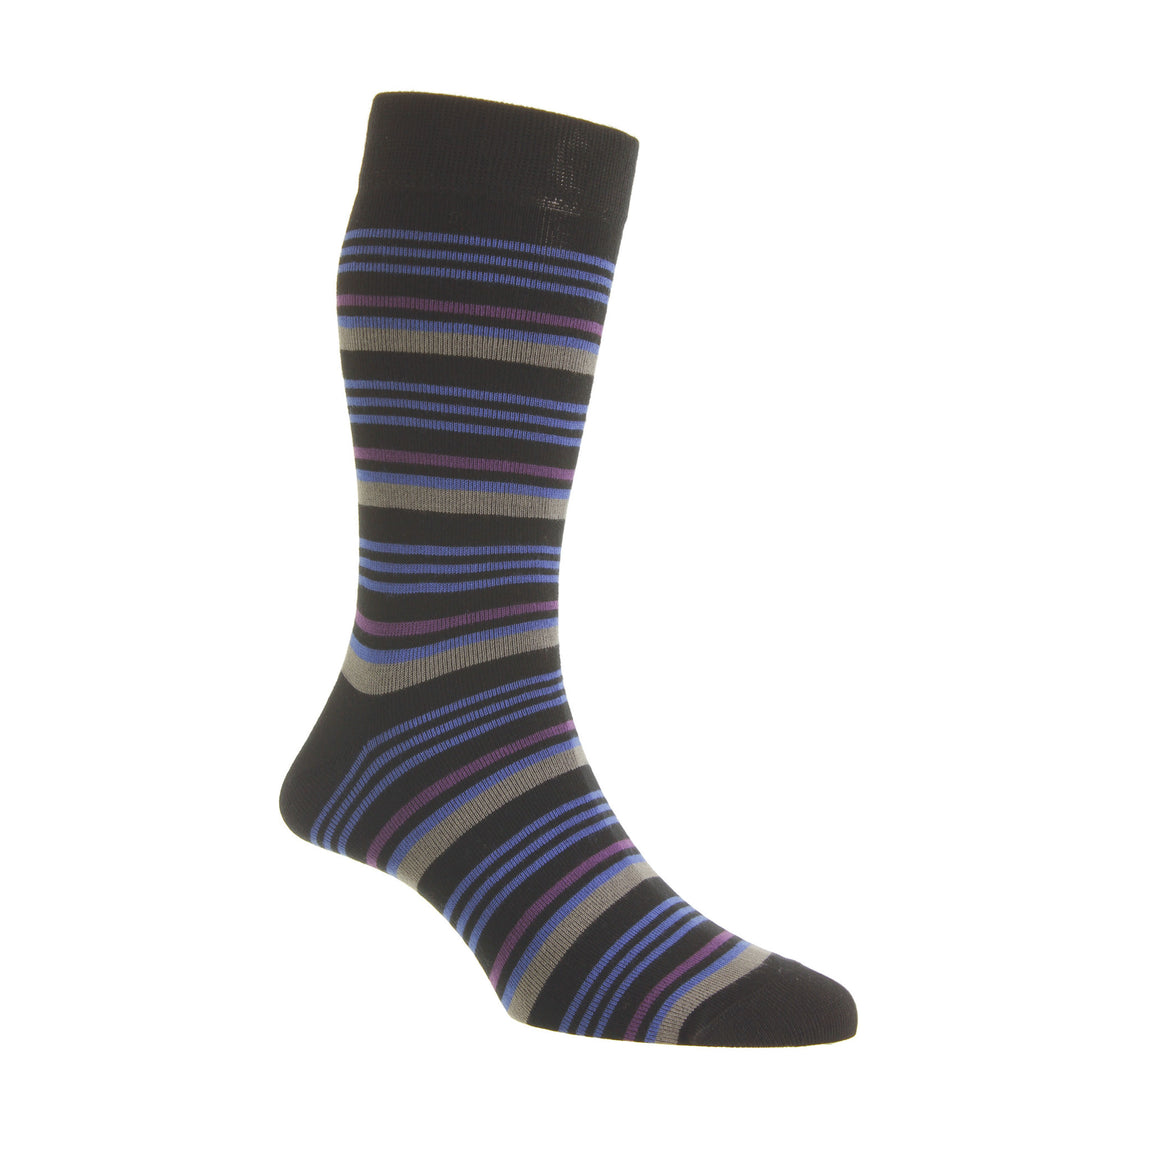 HJ6529 Socks for Men in Black/Electric